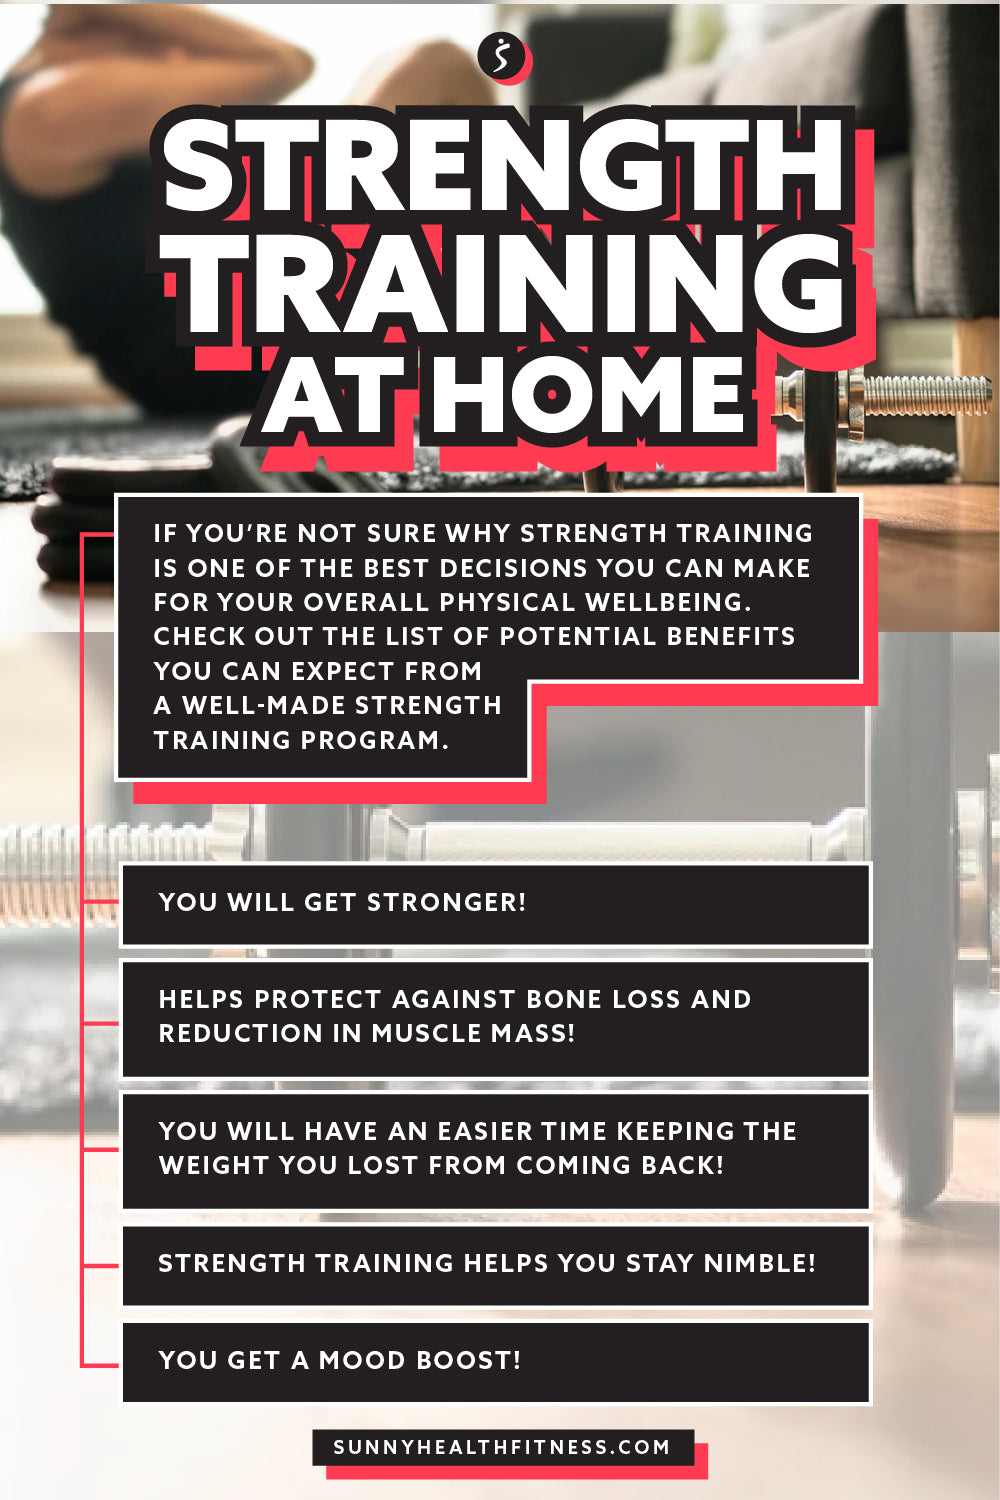 Strength Training at Home Infographic